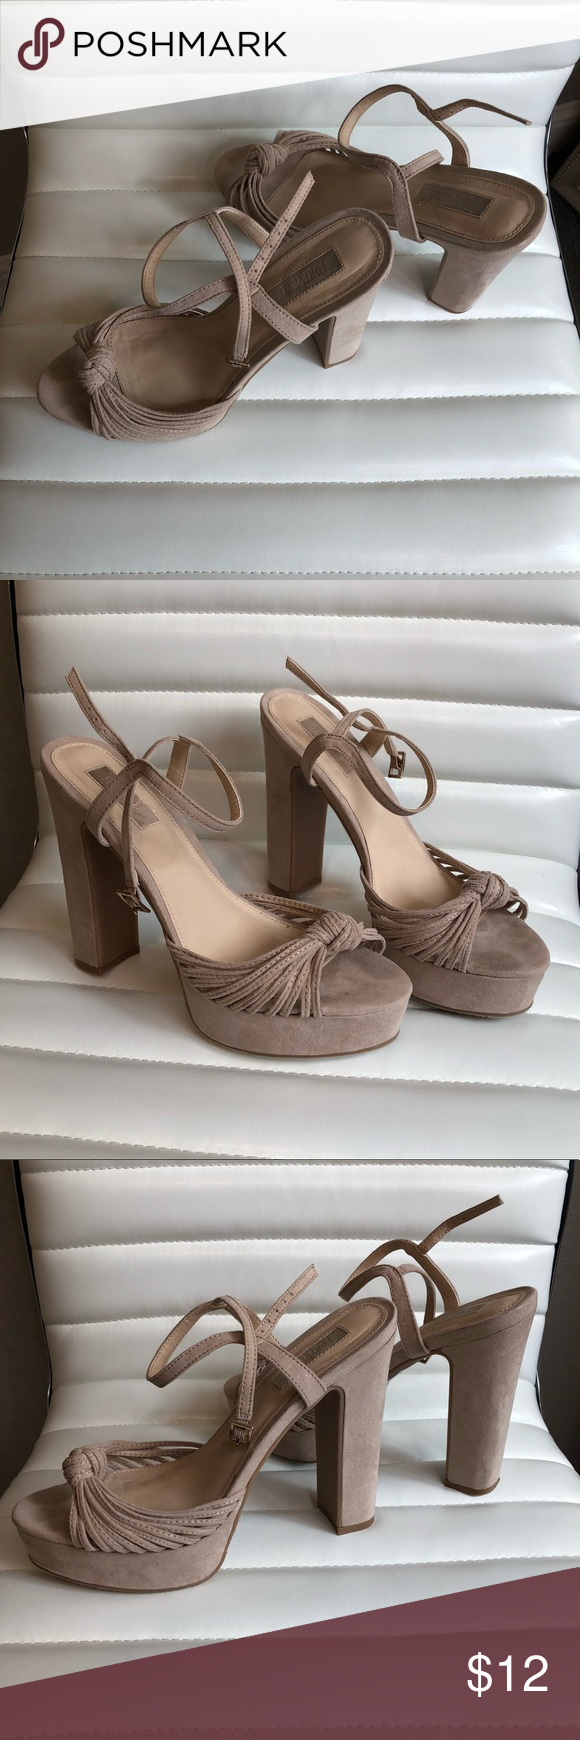 99ce6a75d69 Forever 21 nude block heels Size 7 Forever 21 nude block heels size 7 worn  once